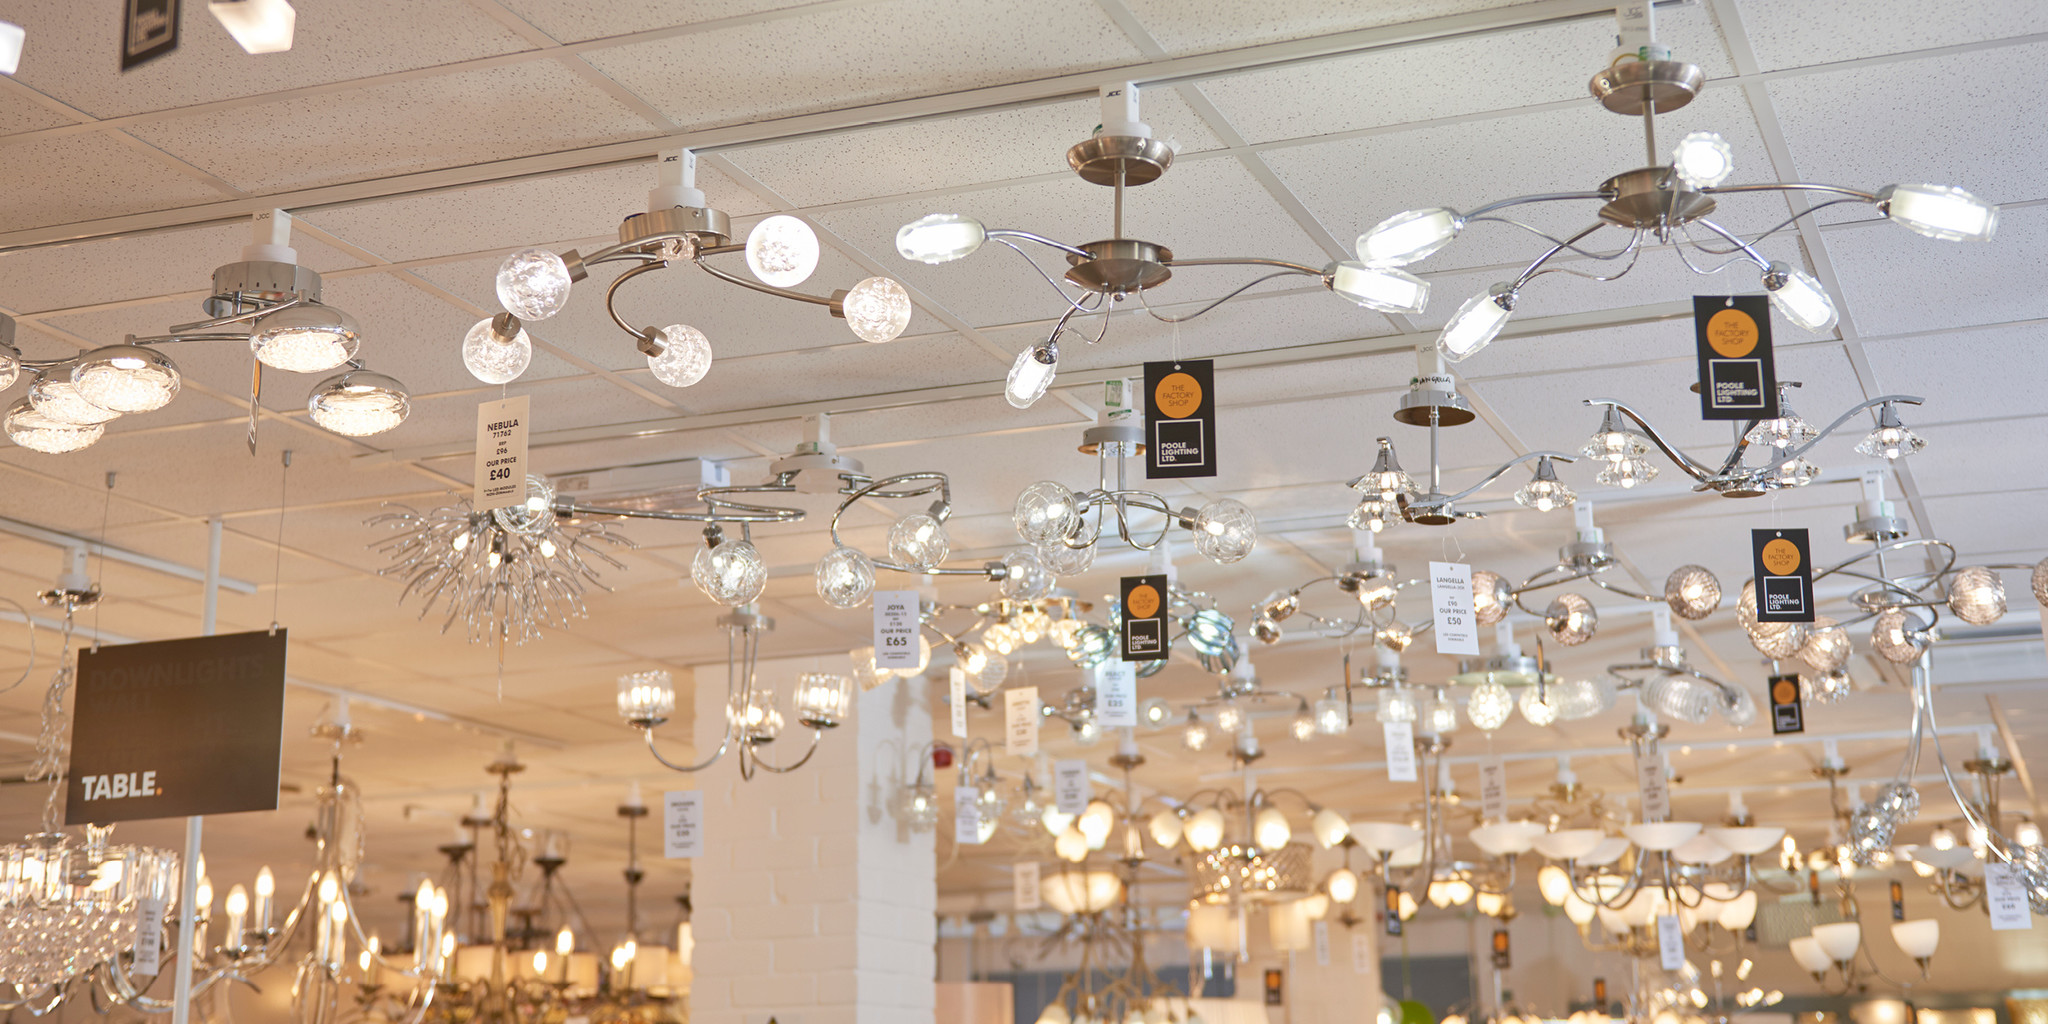 The Factory Shop ceiling lights